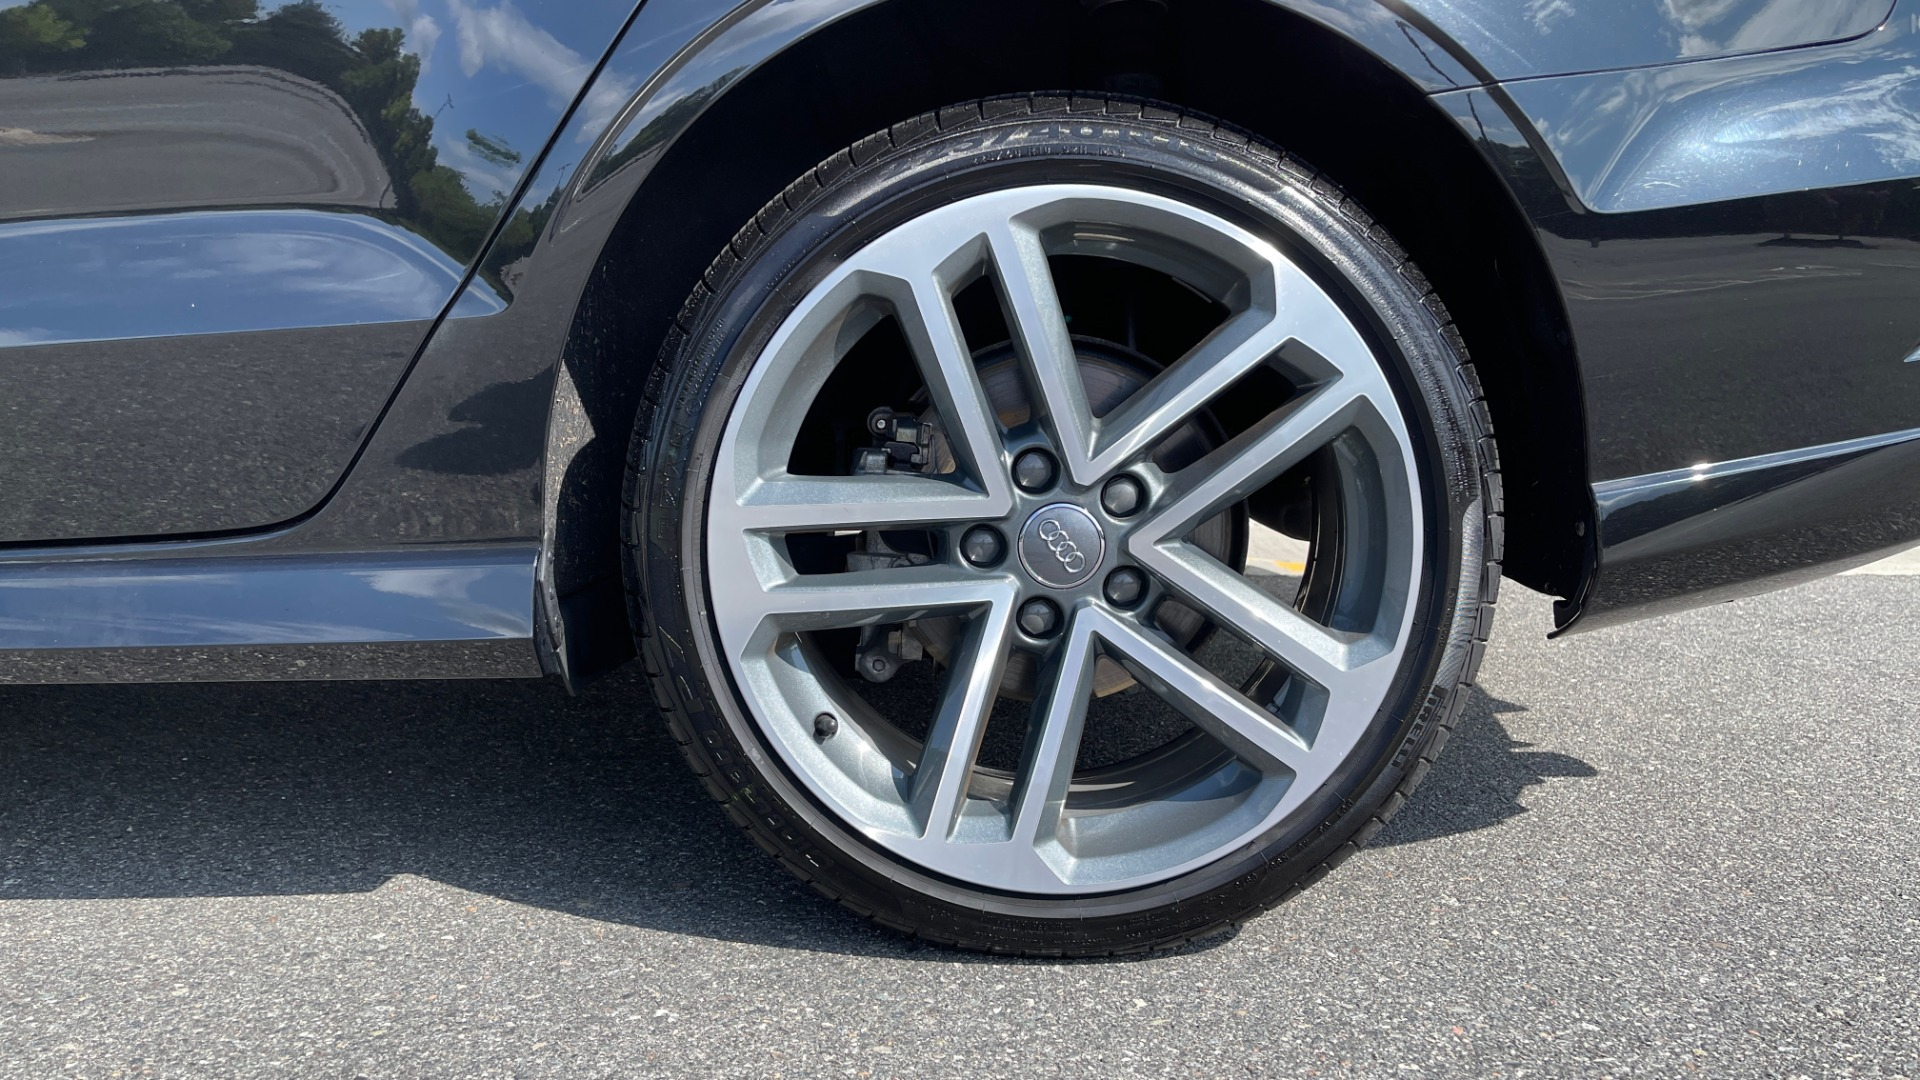 Used 2018 Audi A3 SEDAN PREMIUM PLUS / S-LINE / PANO-ROOF / PARK SYS / REARVIEW for sale $31,795 at Formula Imports in Charlotte NC 28227 68